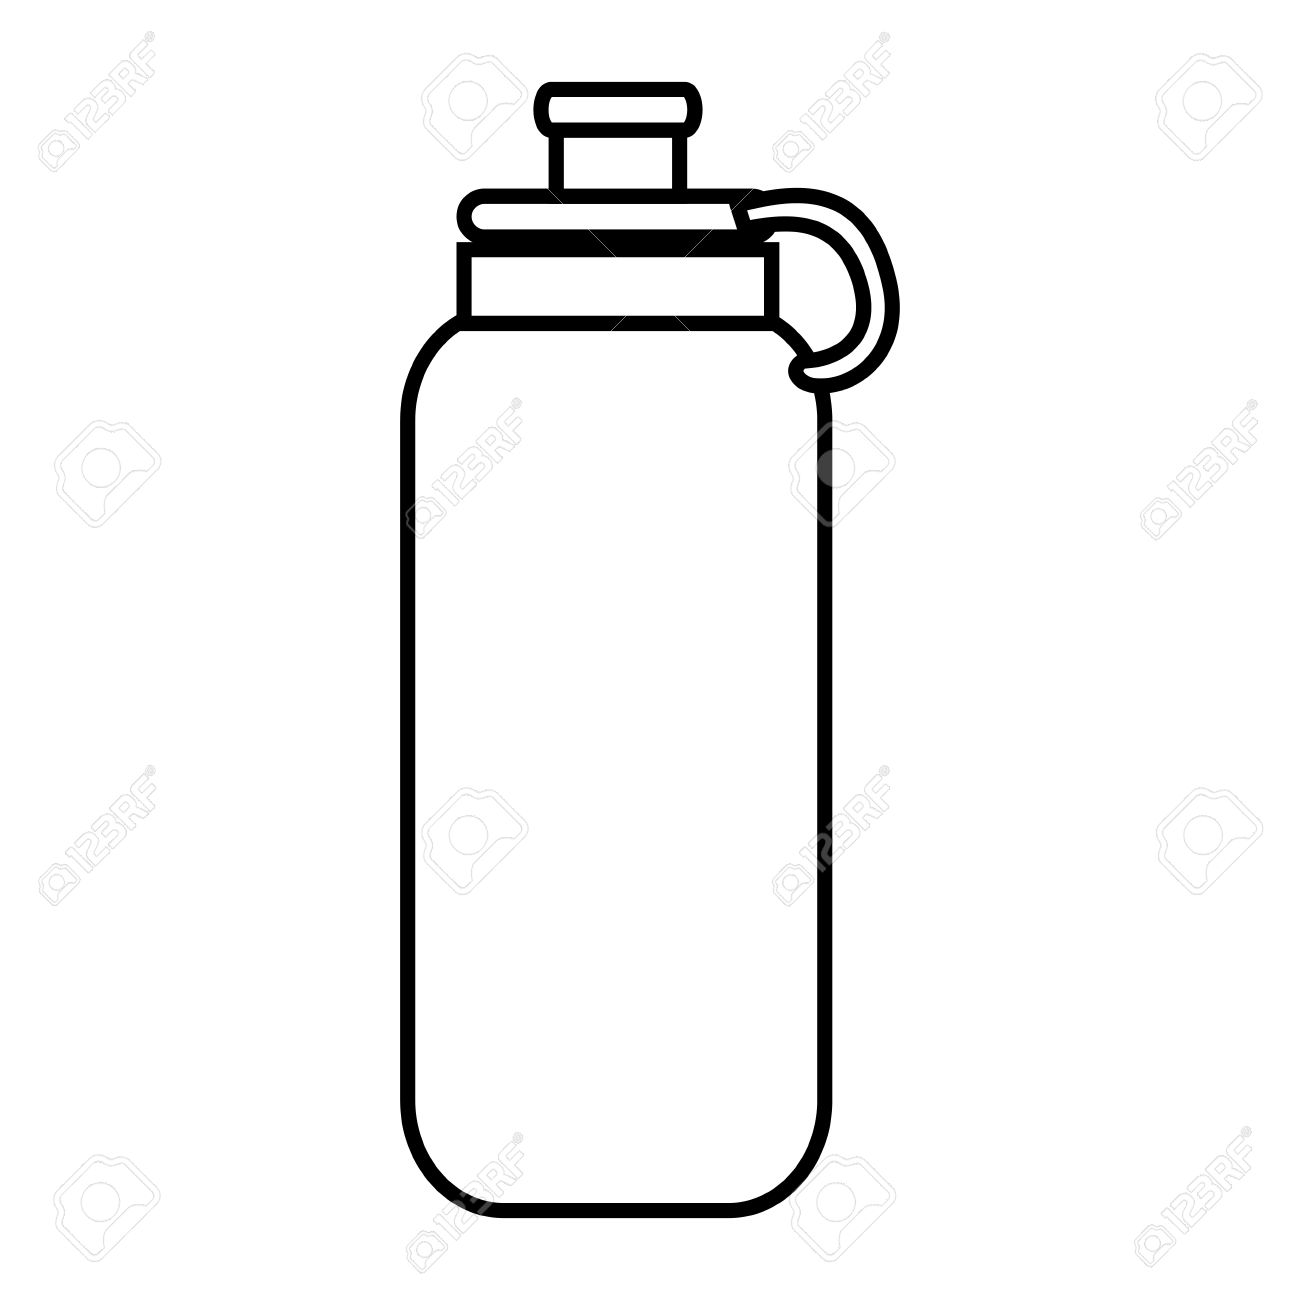 water bottle object isolated black and white flat icon design rh 123rf com water bottle clipart transparent water bottle clipart png